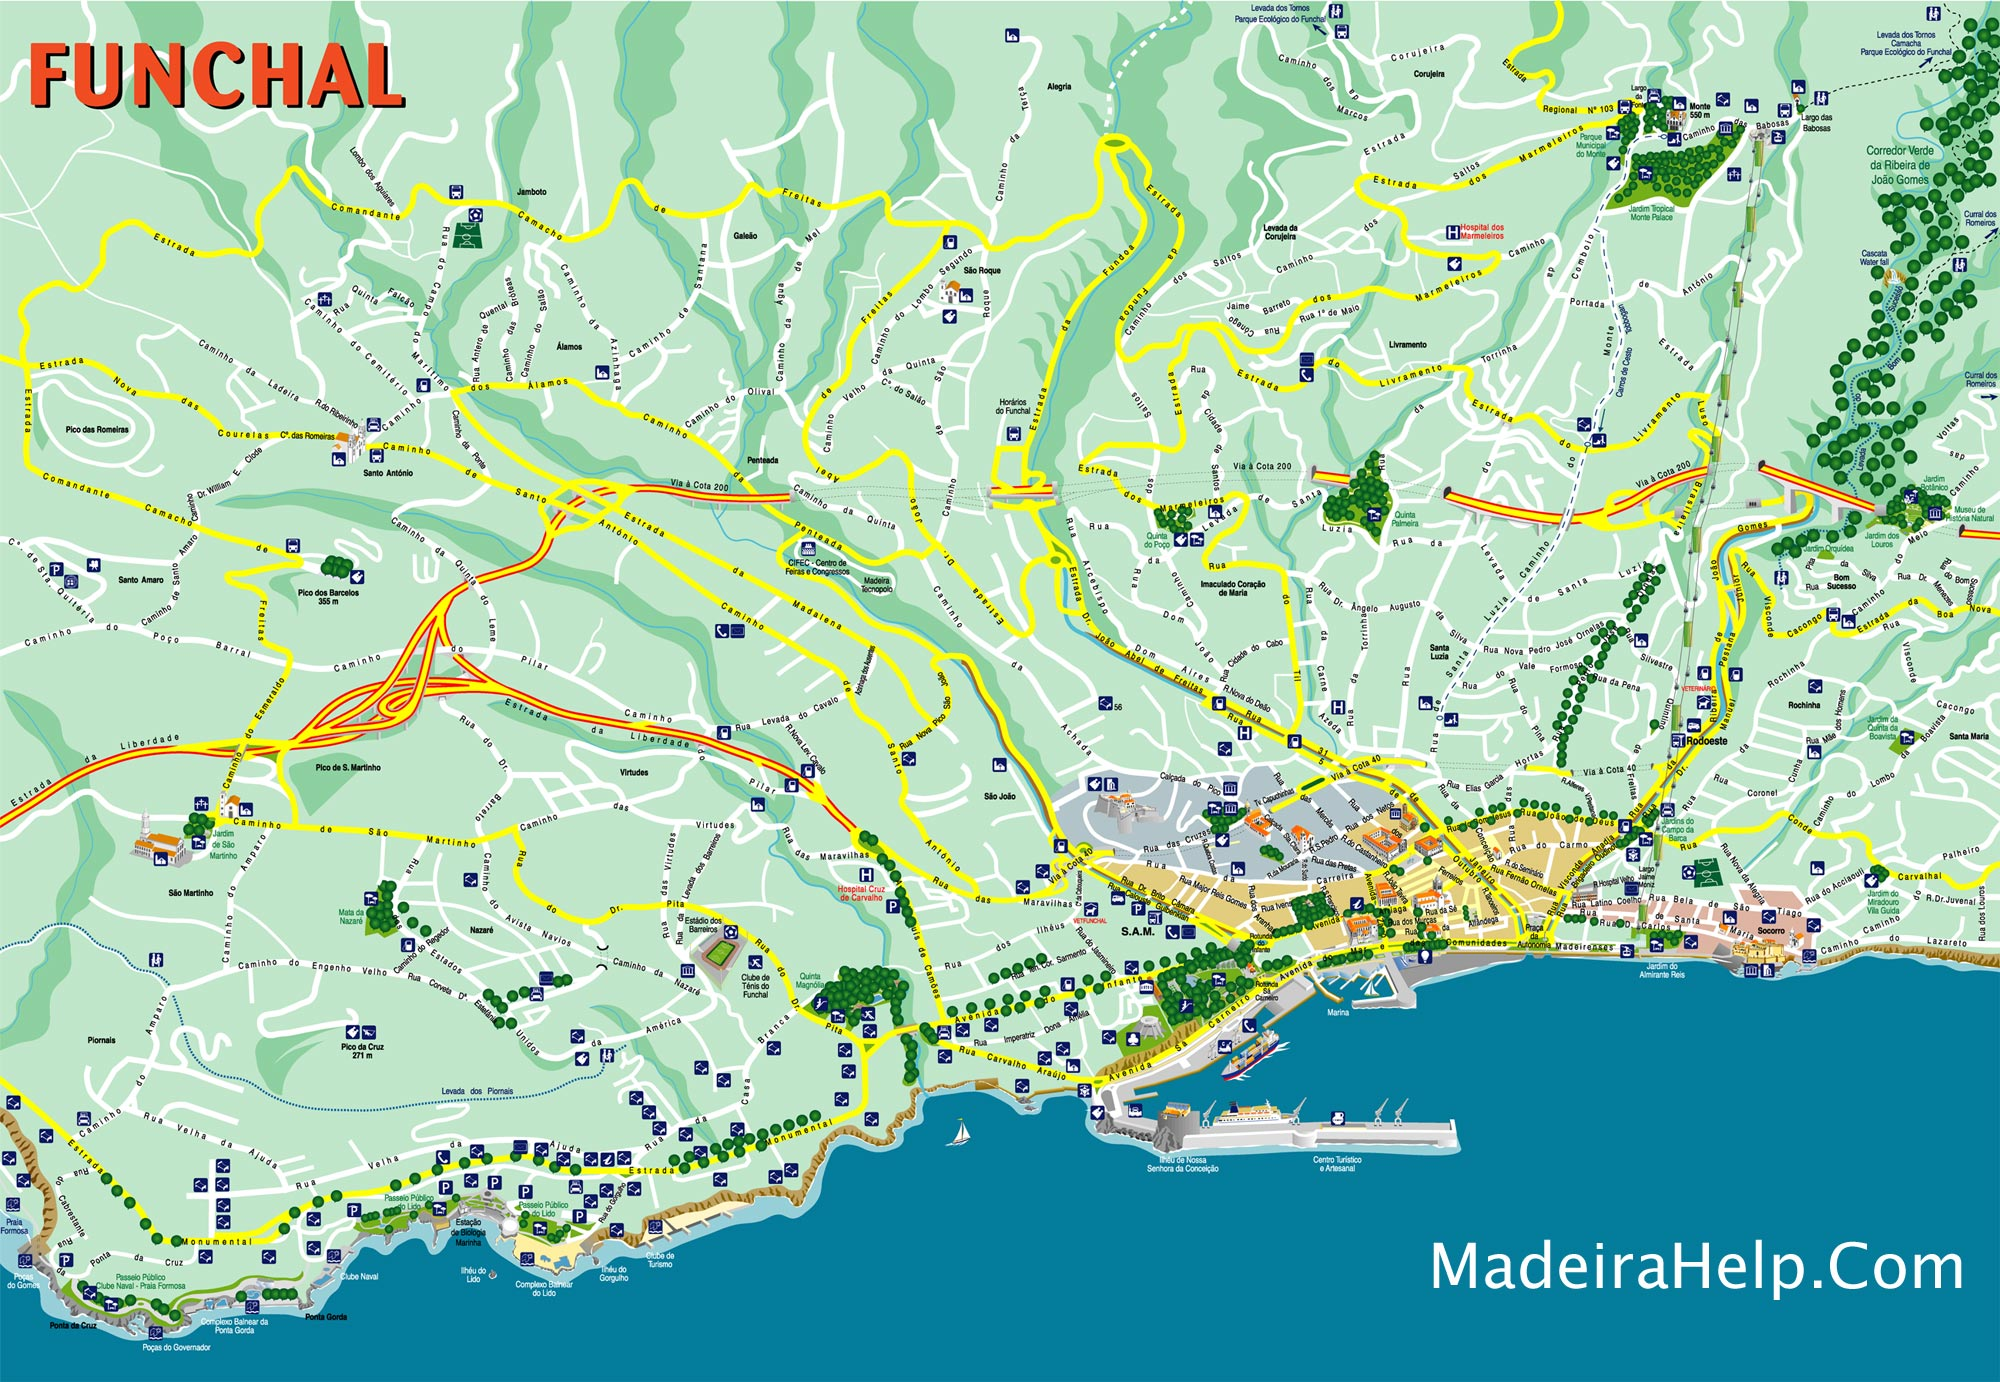 Funchal Madeira Map Funchal Madeira Mappery - Portugal map weather